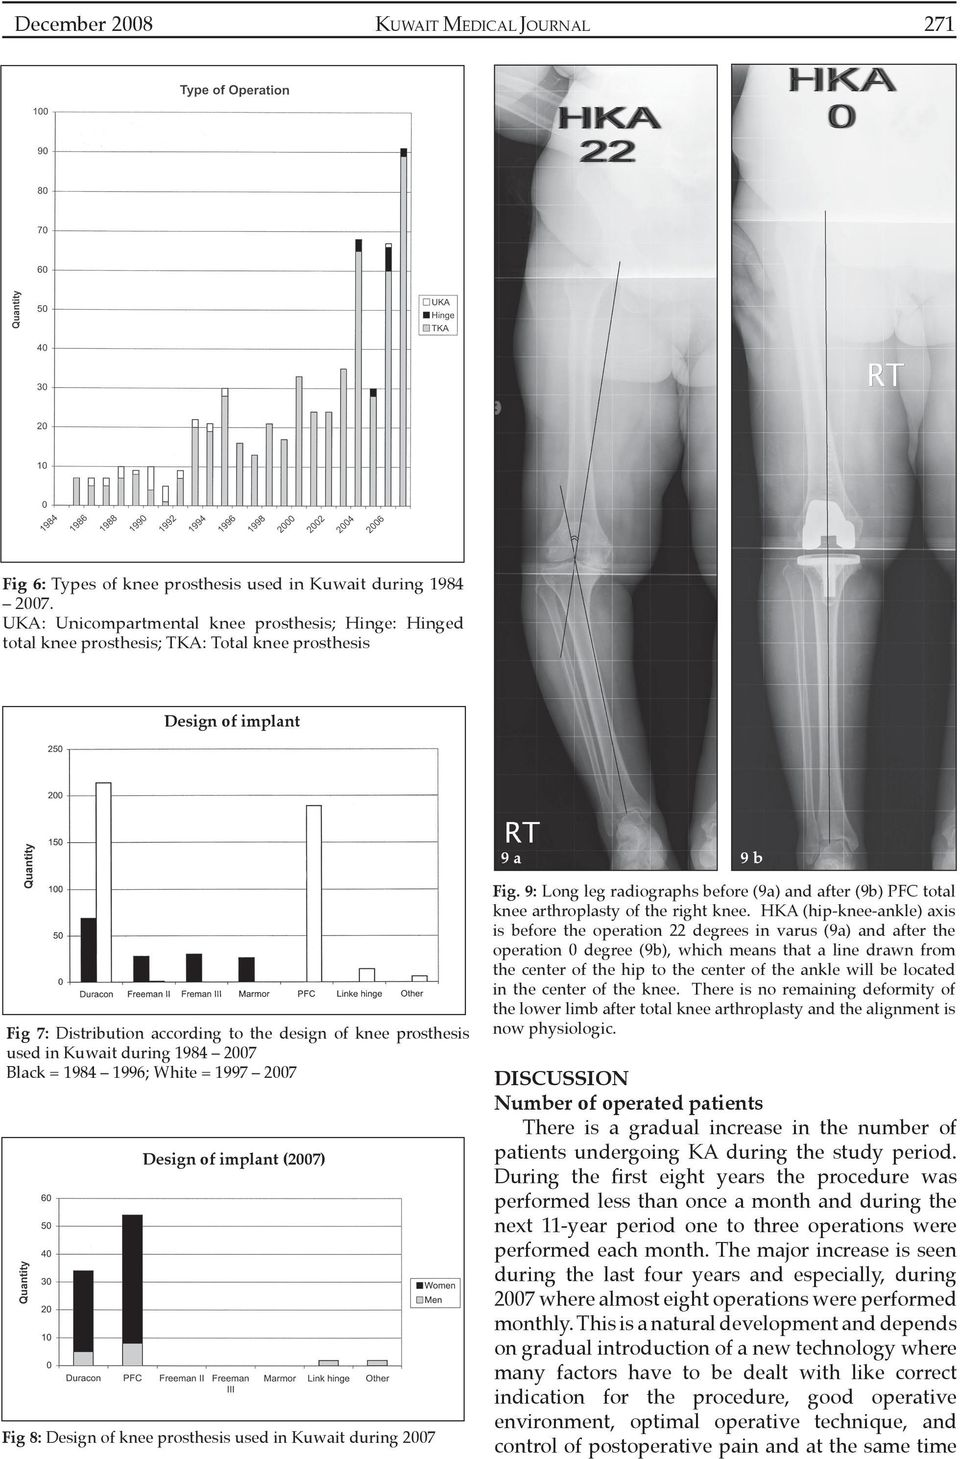 Kuwait during 1984 2007 Black = 1984 1996; White = 1997 2007 Design of implant (2007) Fig 8: Design of knee prosthesis used in Kuwait during 2007 Fig.